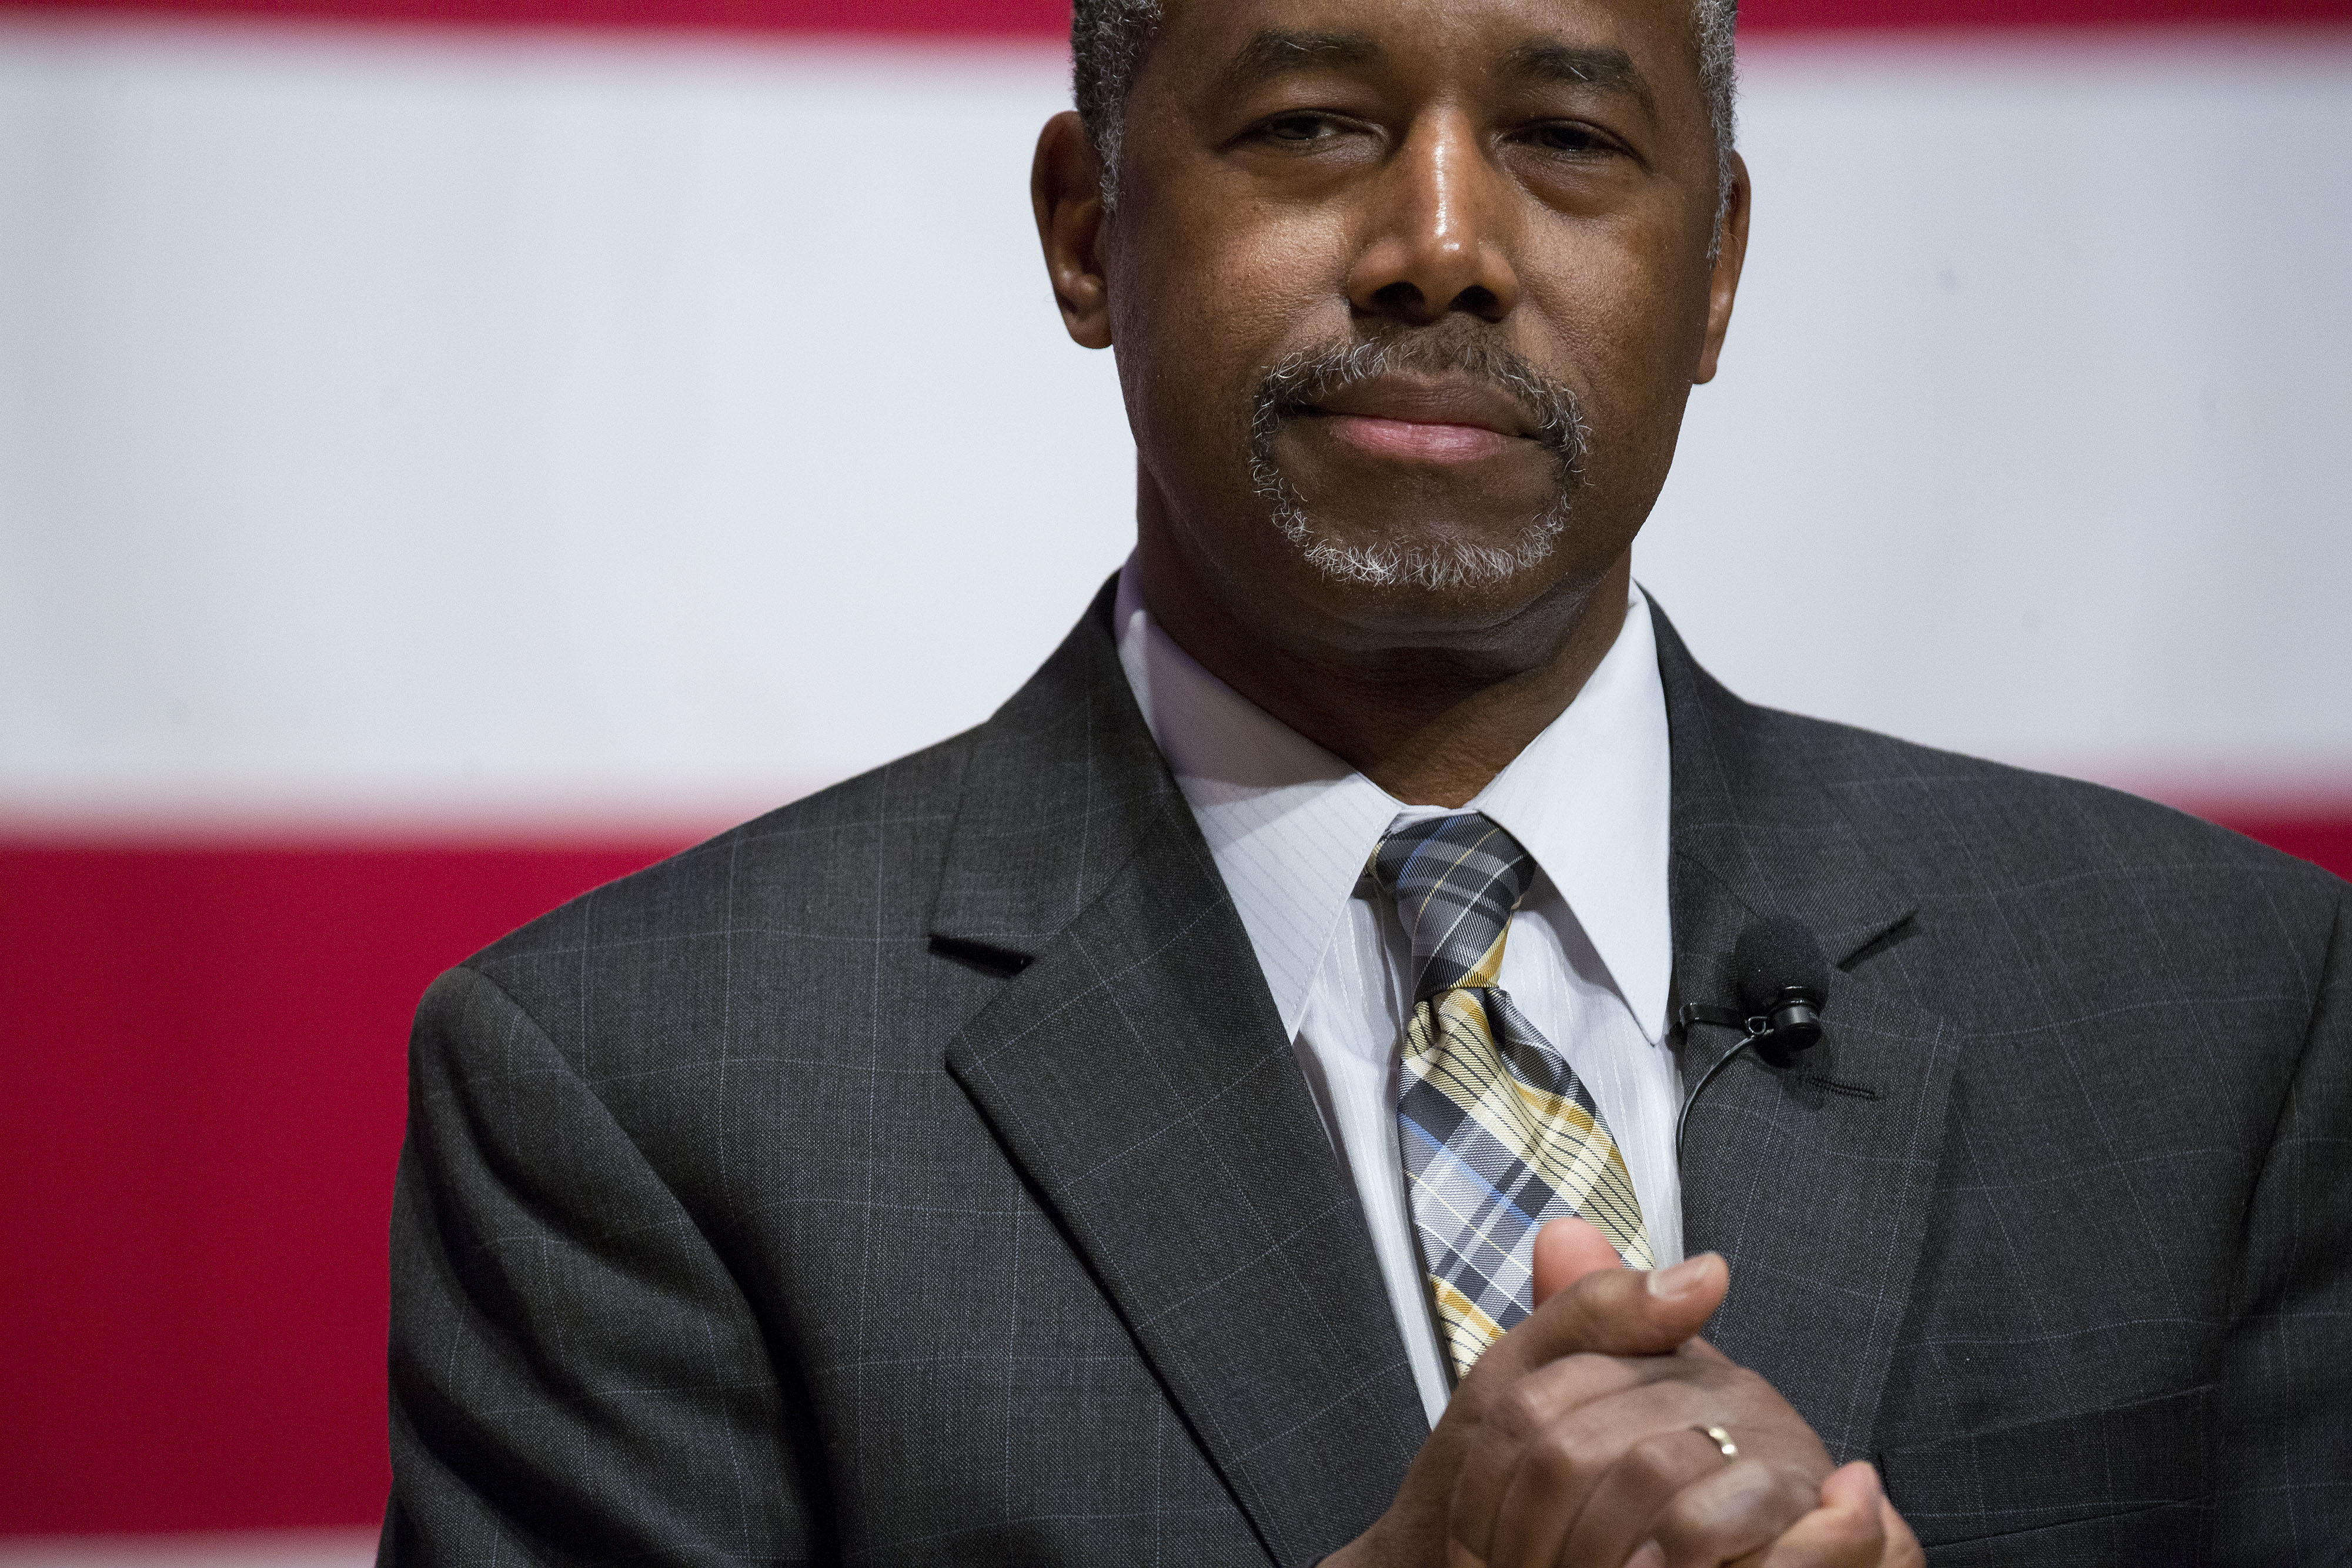 Ben Carson listens to a question during a town hall meeting at Nashua Community College in Nashua, New Hampshire, U.S., on Sunday, Dec. 20, 2015.